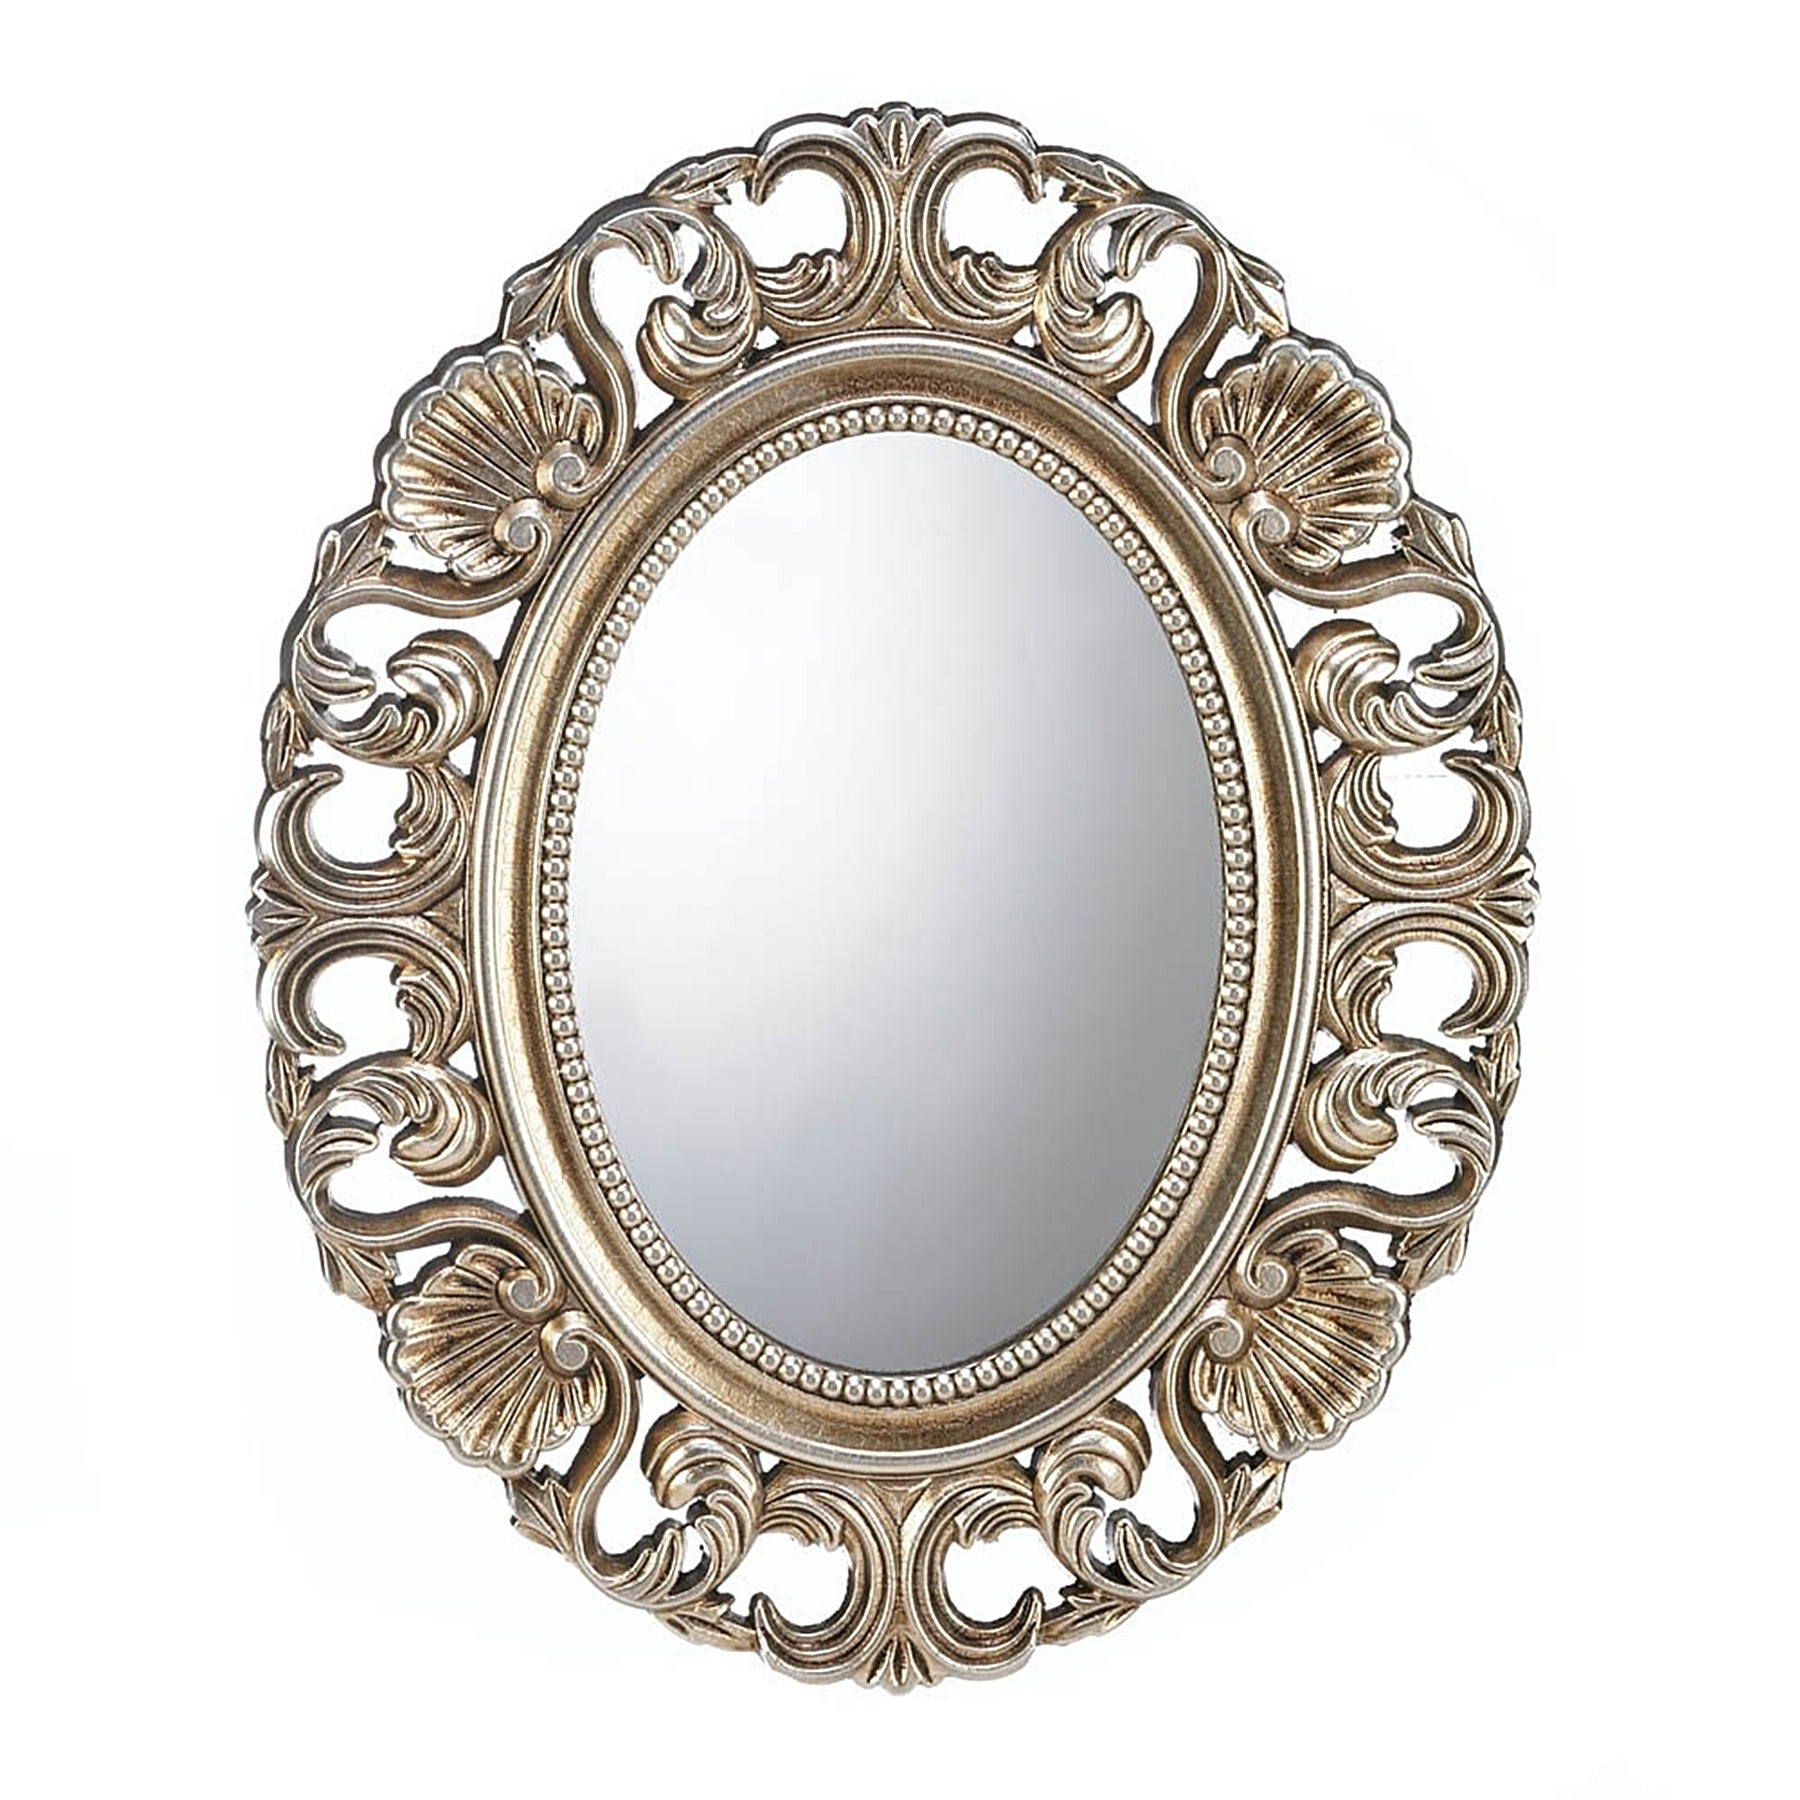 Most Recent Antique Oval Wall Mirrors With Regard To Antique Style Golden Oval Wall Mirror (Gallery 11 of 20)